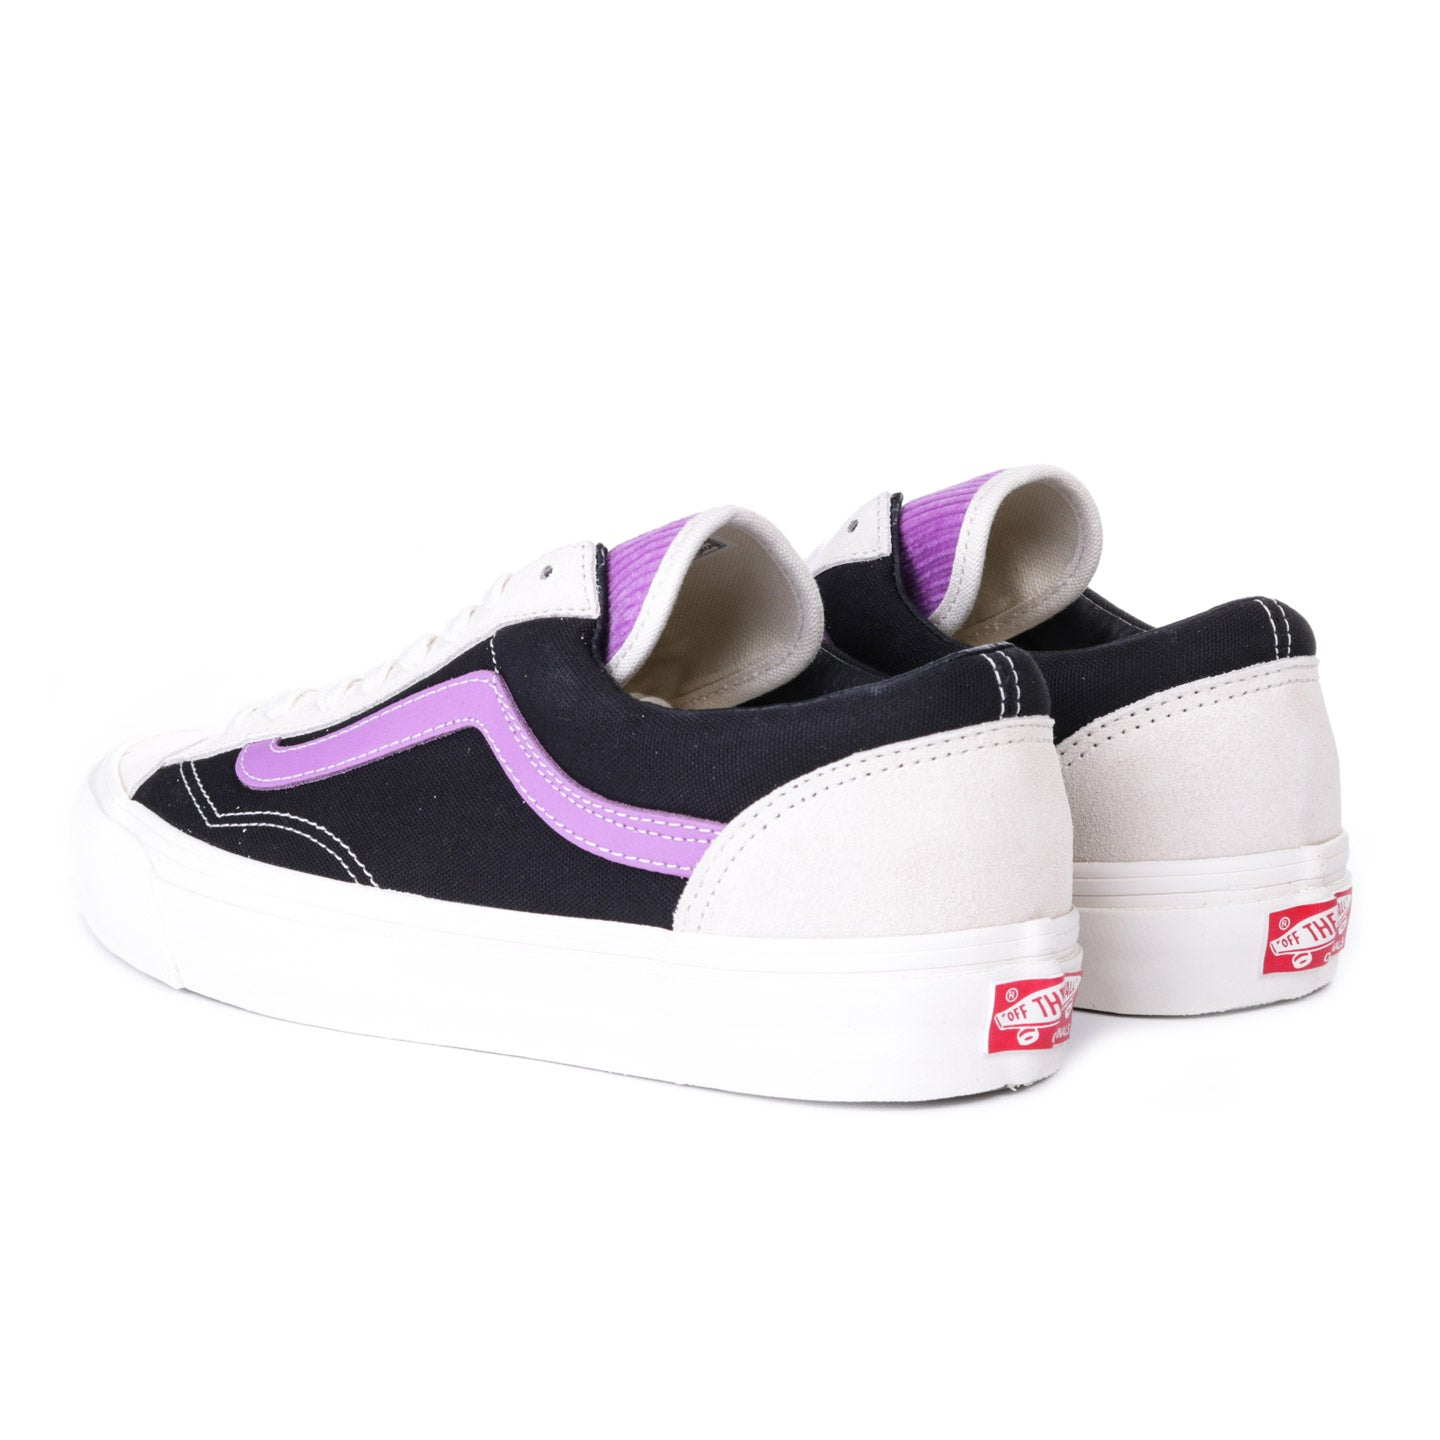 VAULT BY VANS OG STYLE 36 LX WHITECAP GRAY / ORCHID